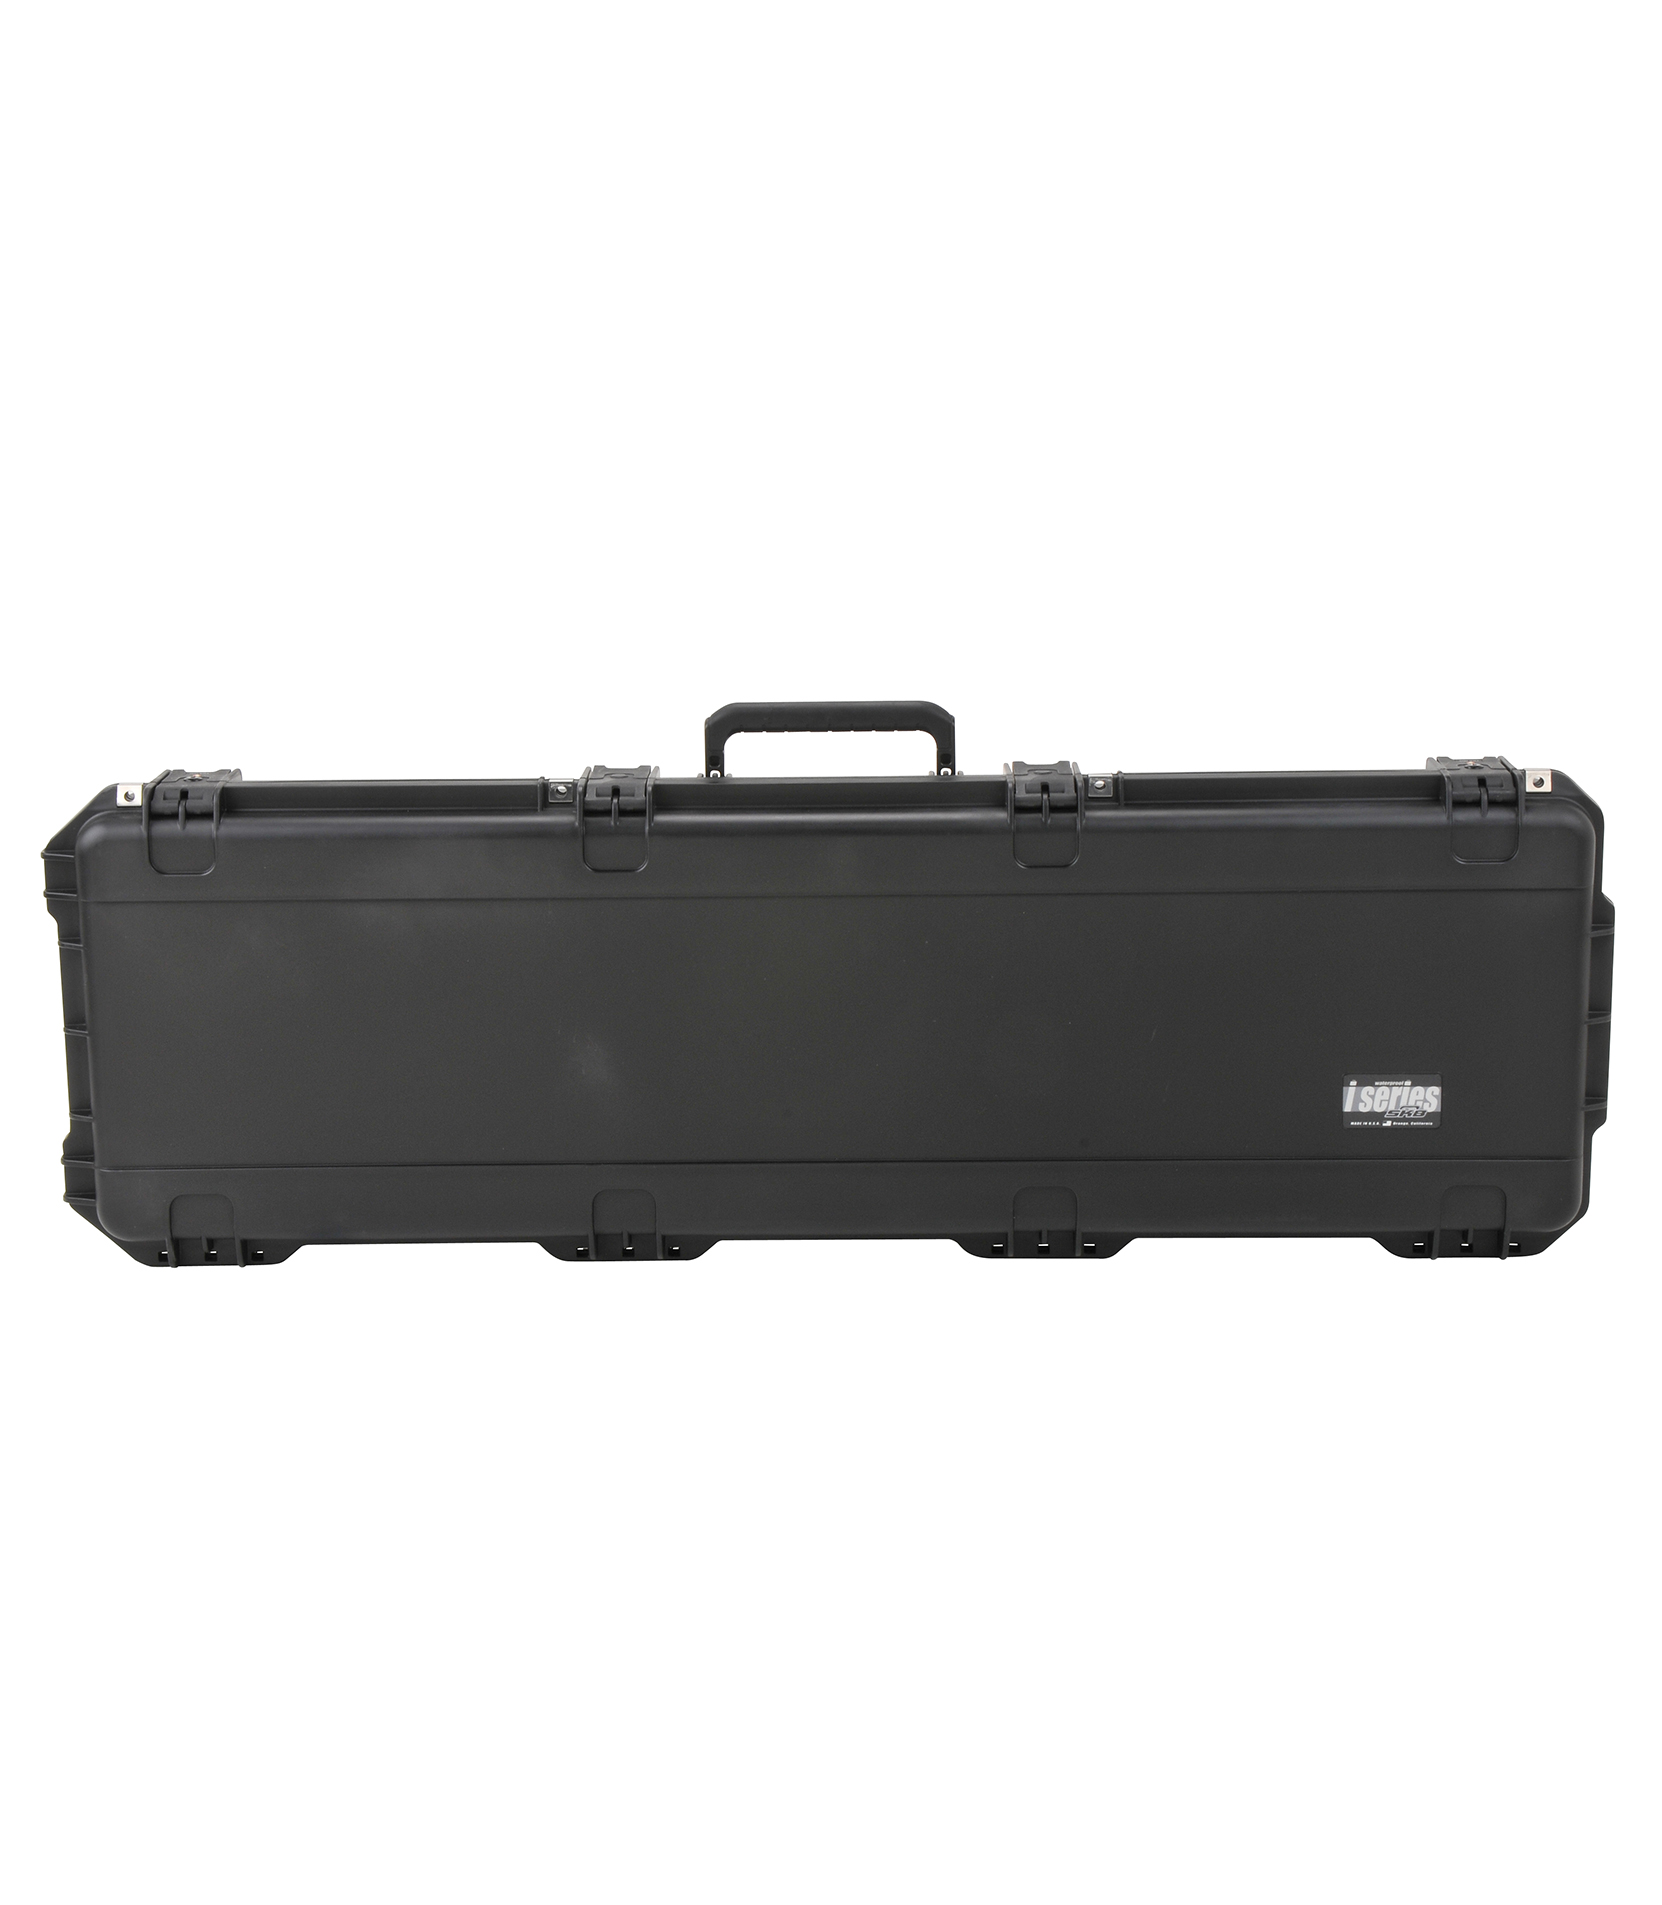 Buy skb 3I 5014 KBD Injection Molded Waterproof 76 Note K Melody House